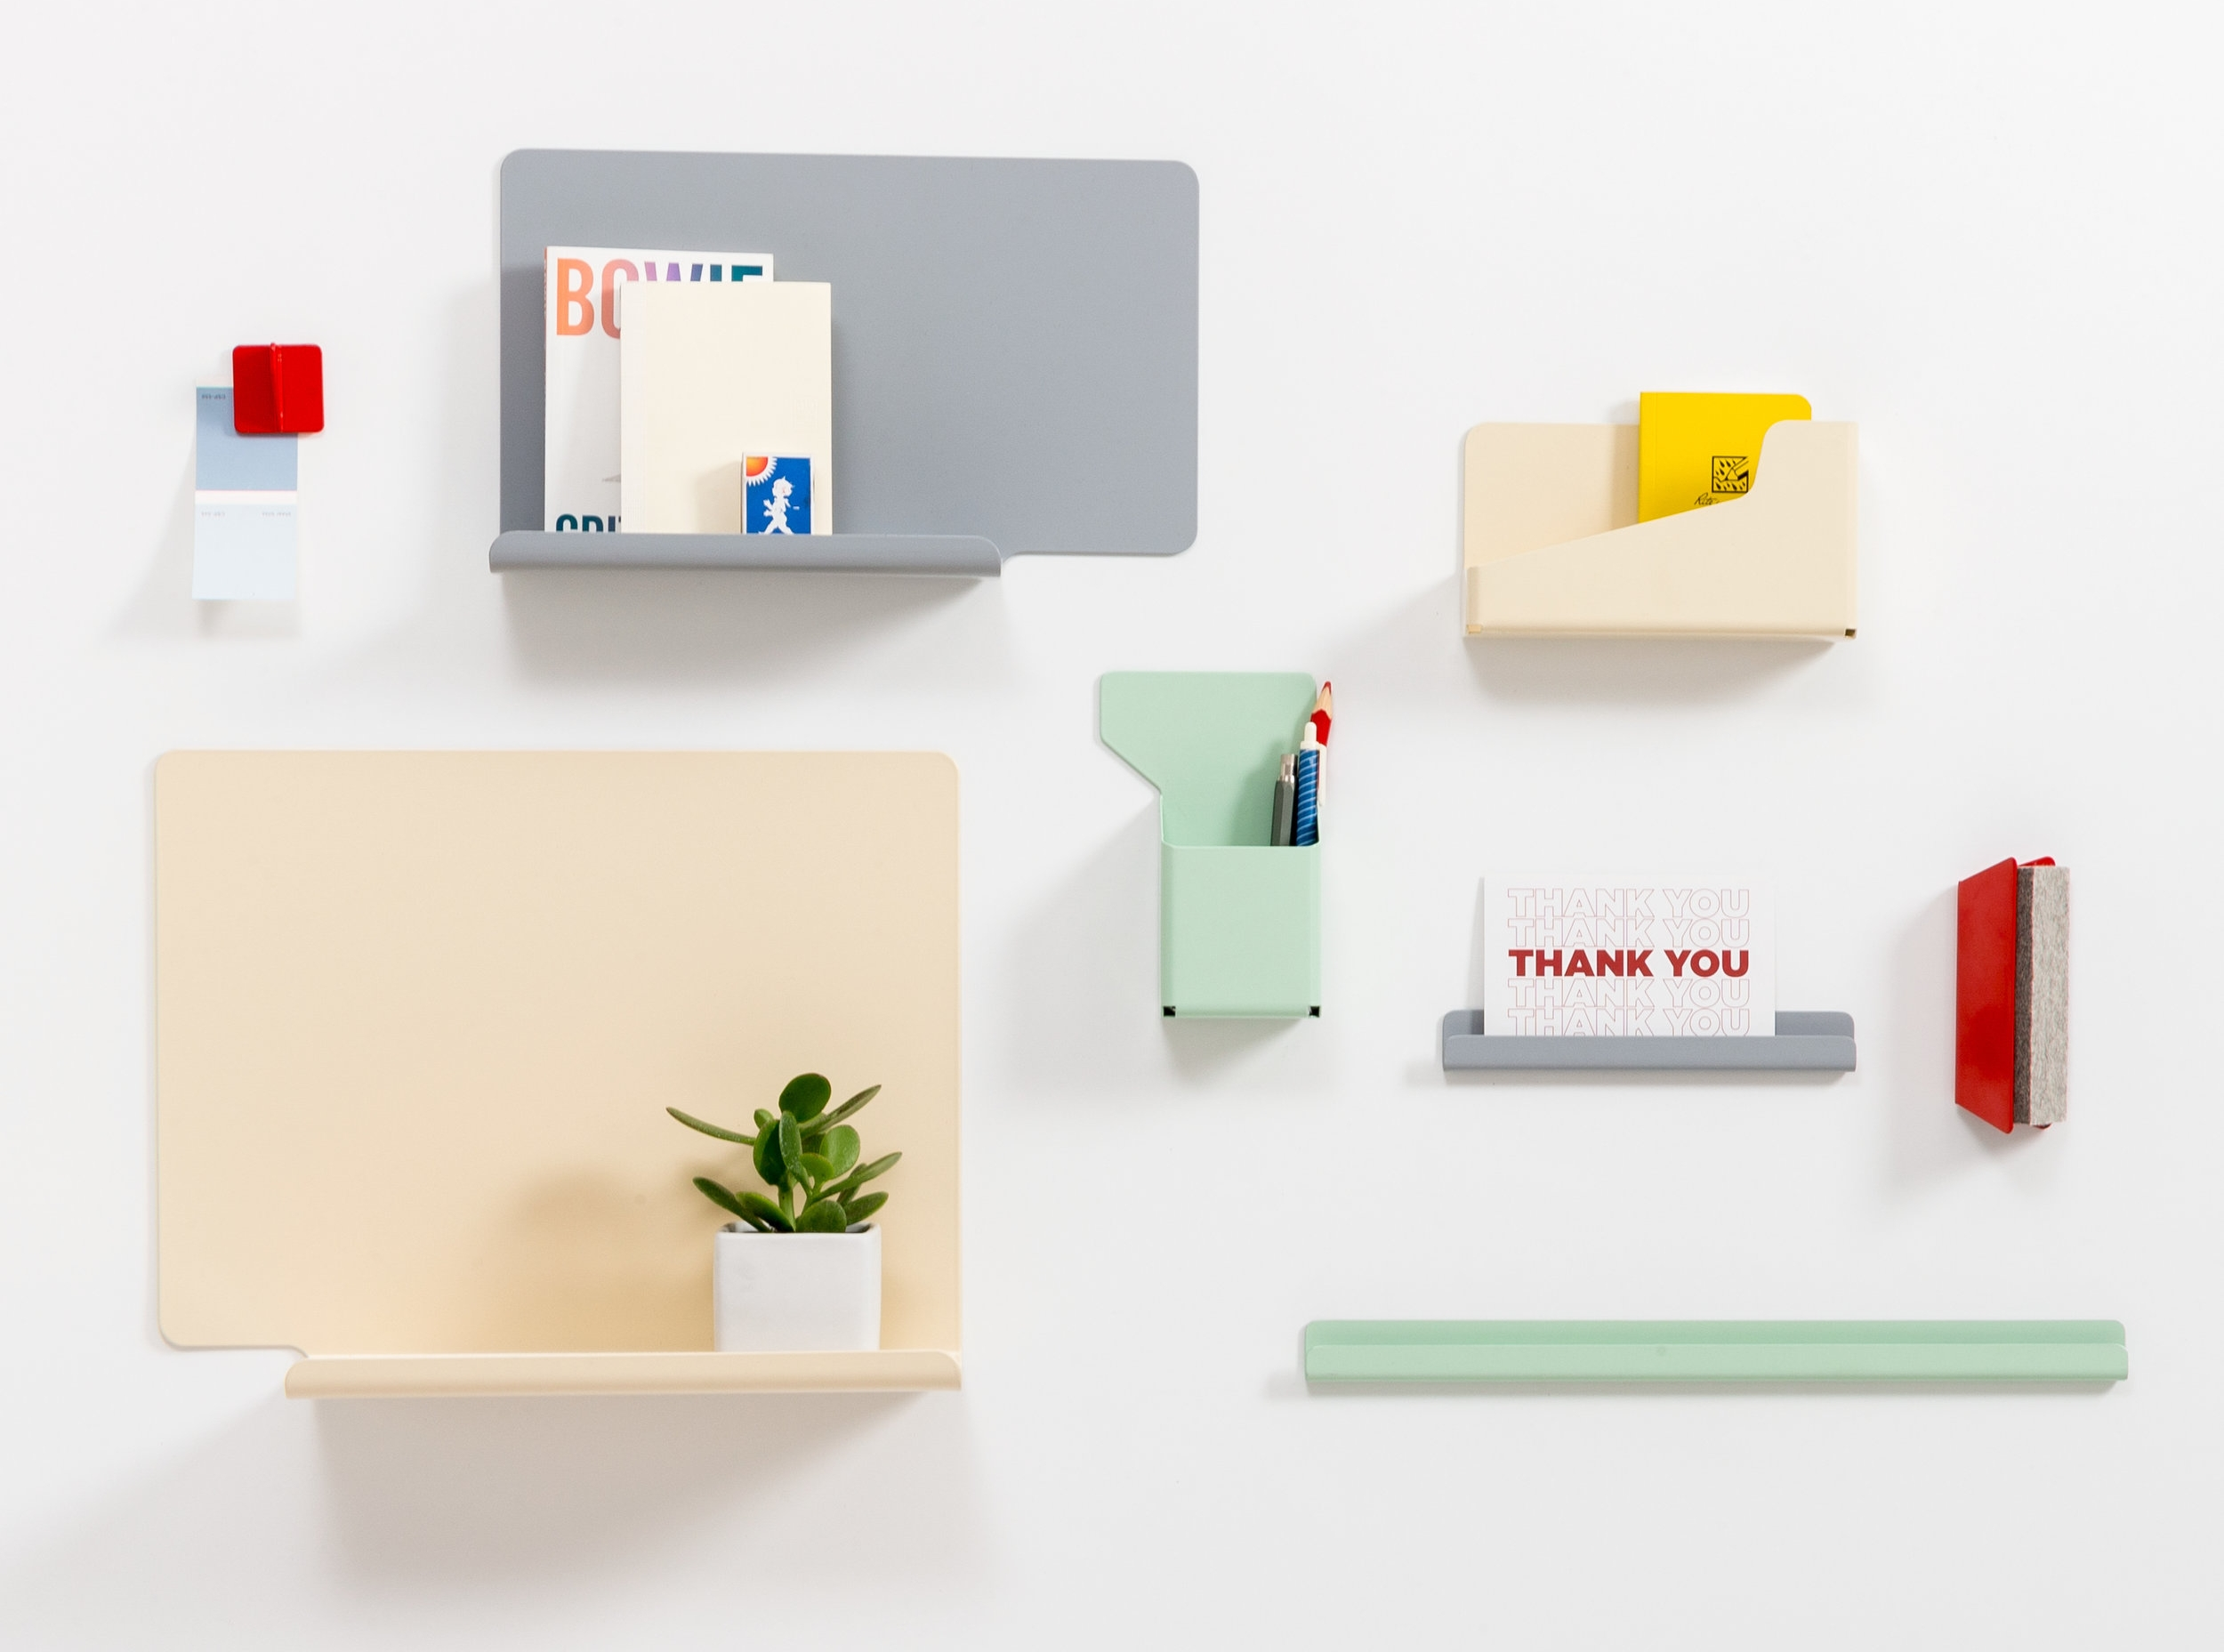 Accessories - Explore our online accessories shop to discover hundreds of specialized products that are designed exclusively for our dynamic system for added organization and functionality.